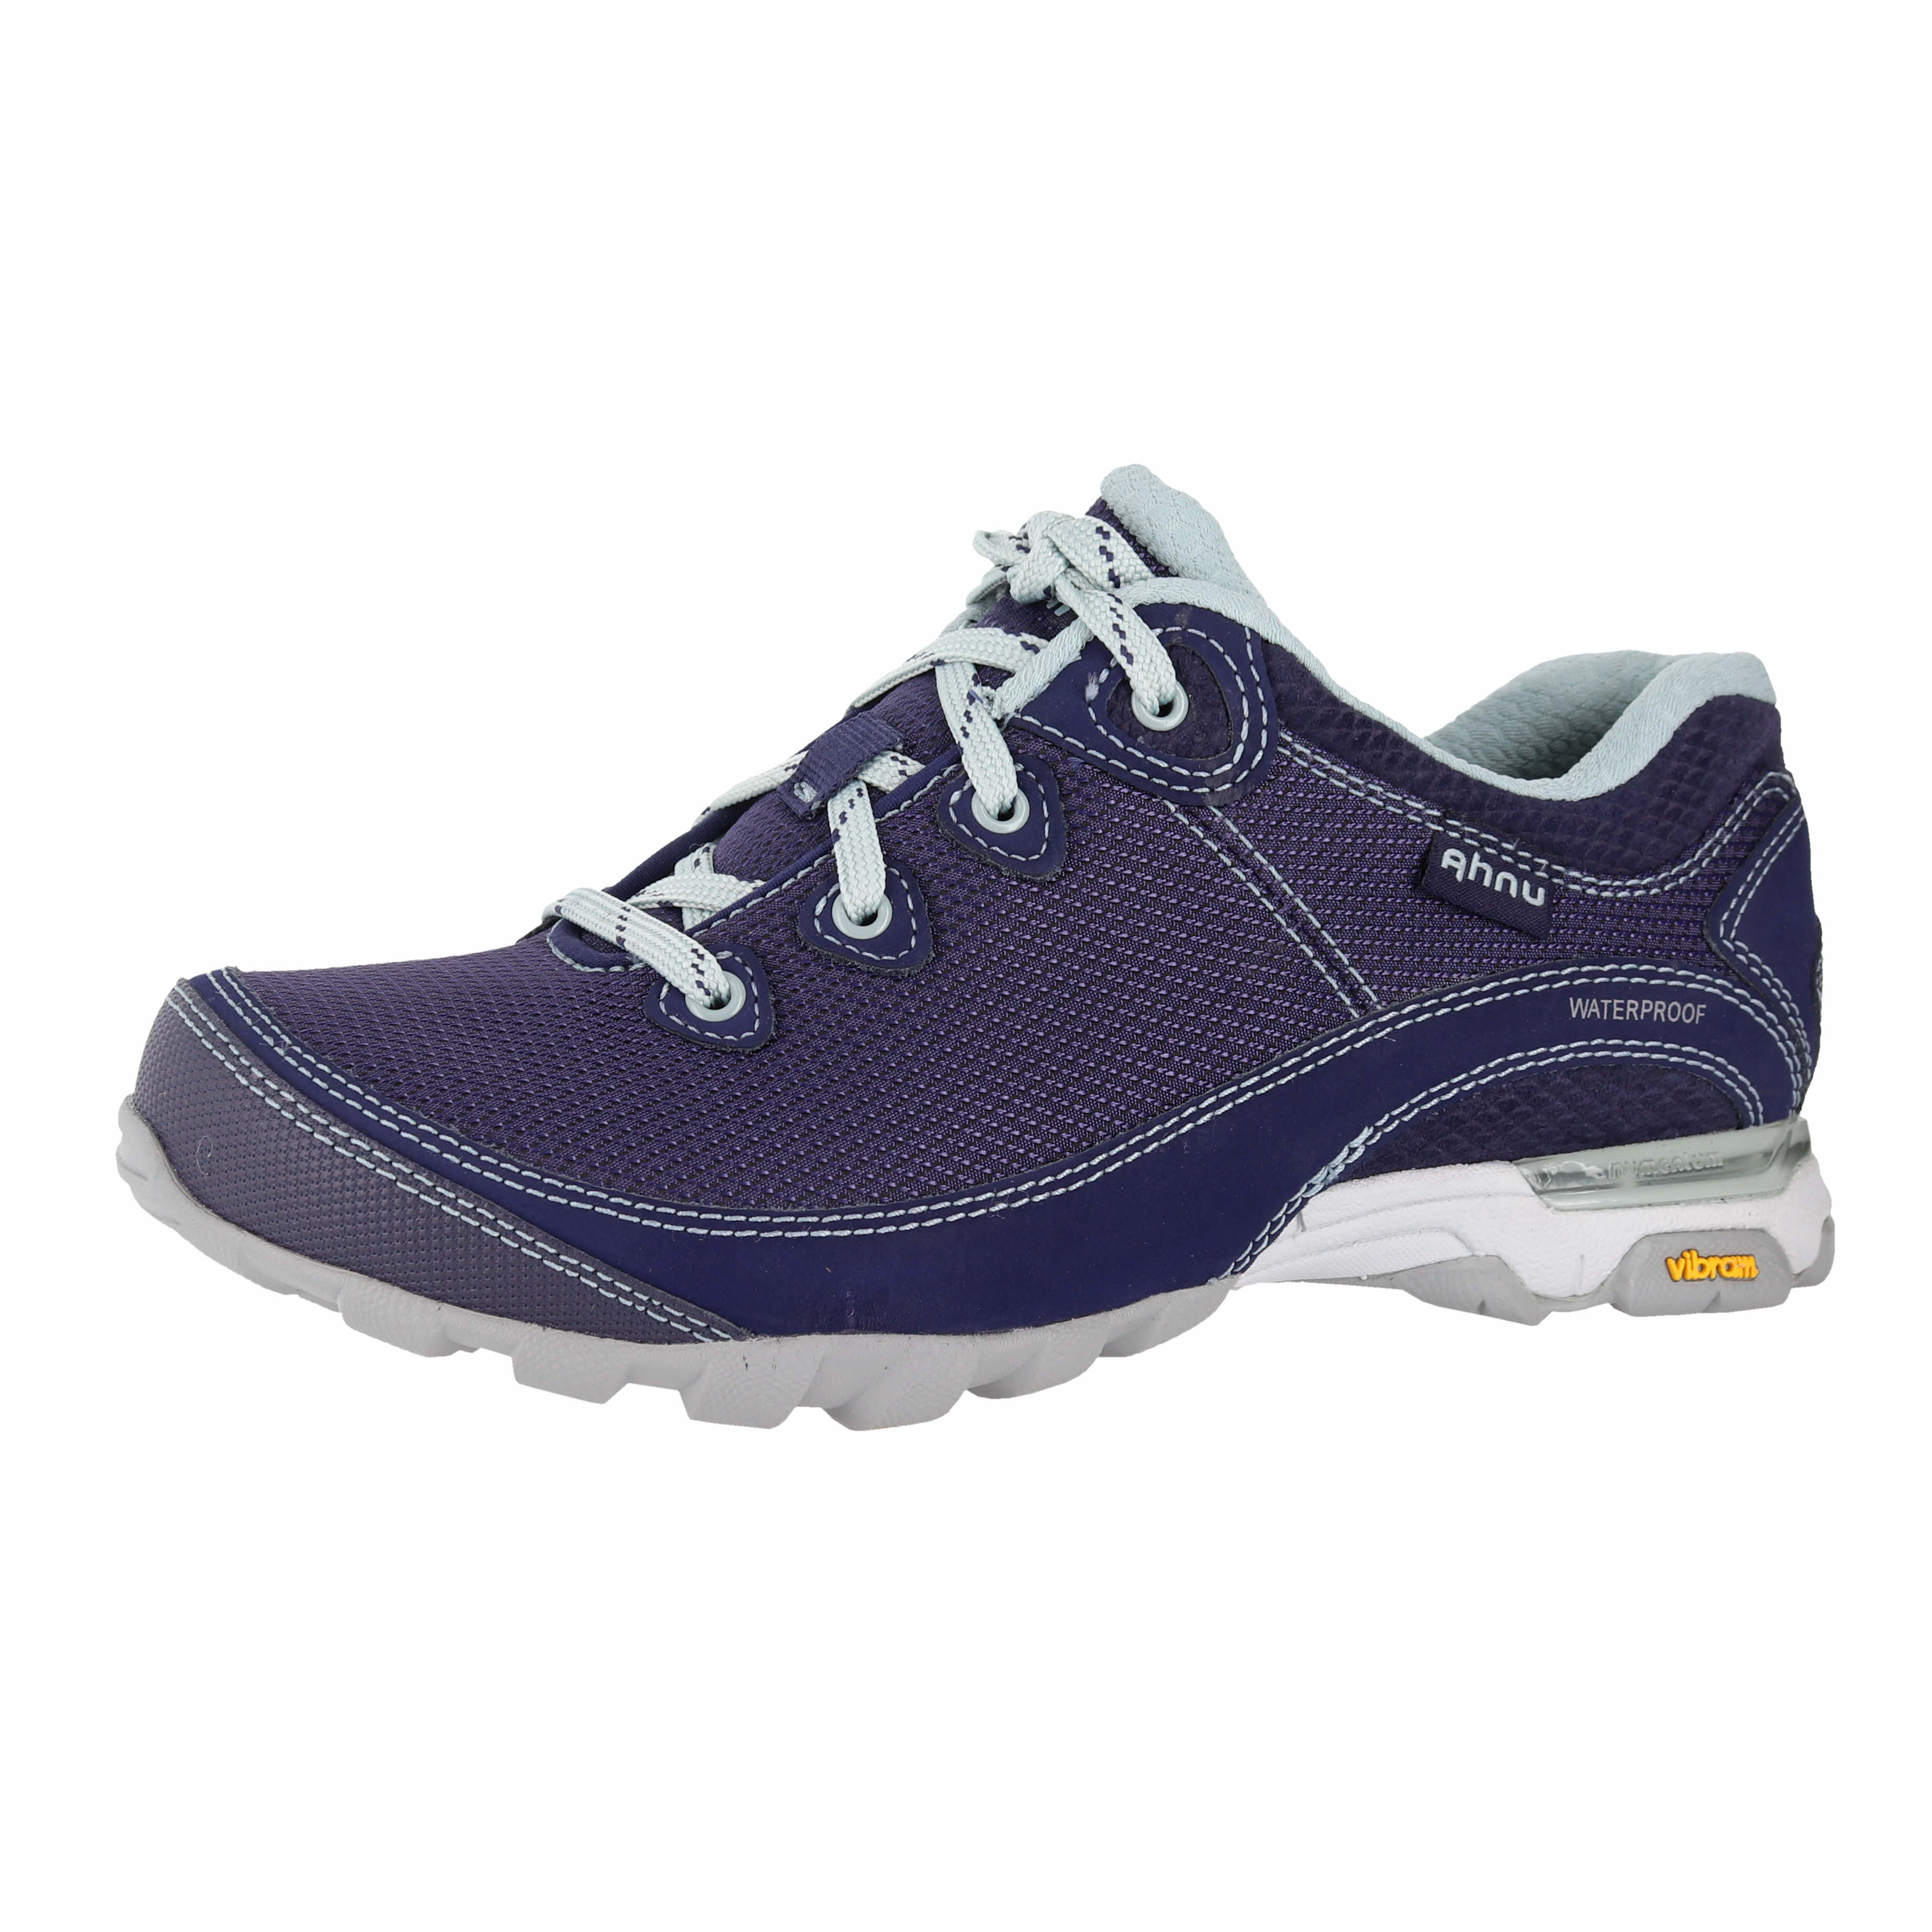 721941e3d Brand  Ahnu By Teva. Model  Sugarpine Ii Wp Ripstop. Style  Boots Hiking  Boots. Gender  Womens